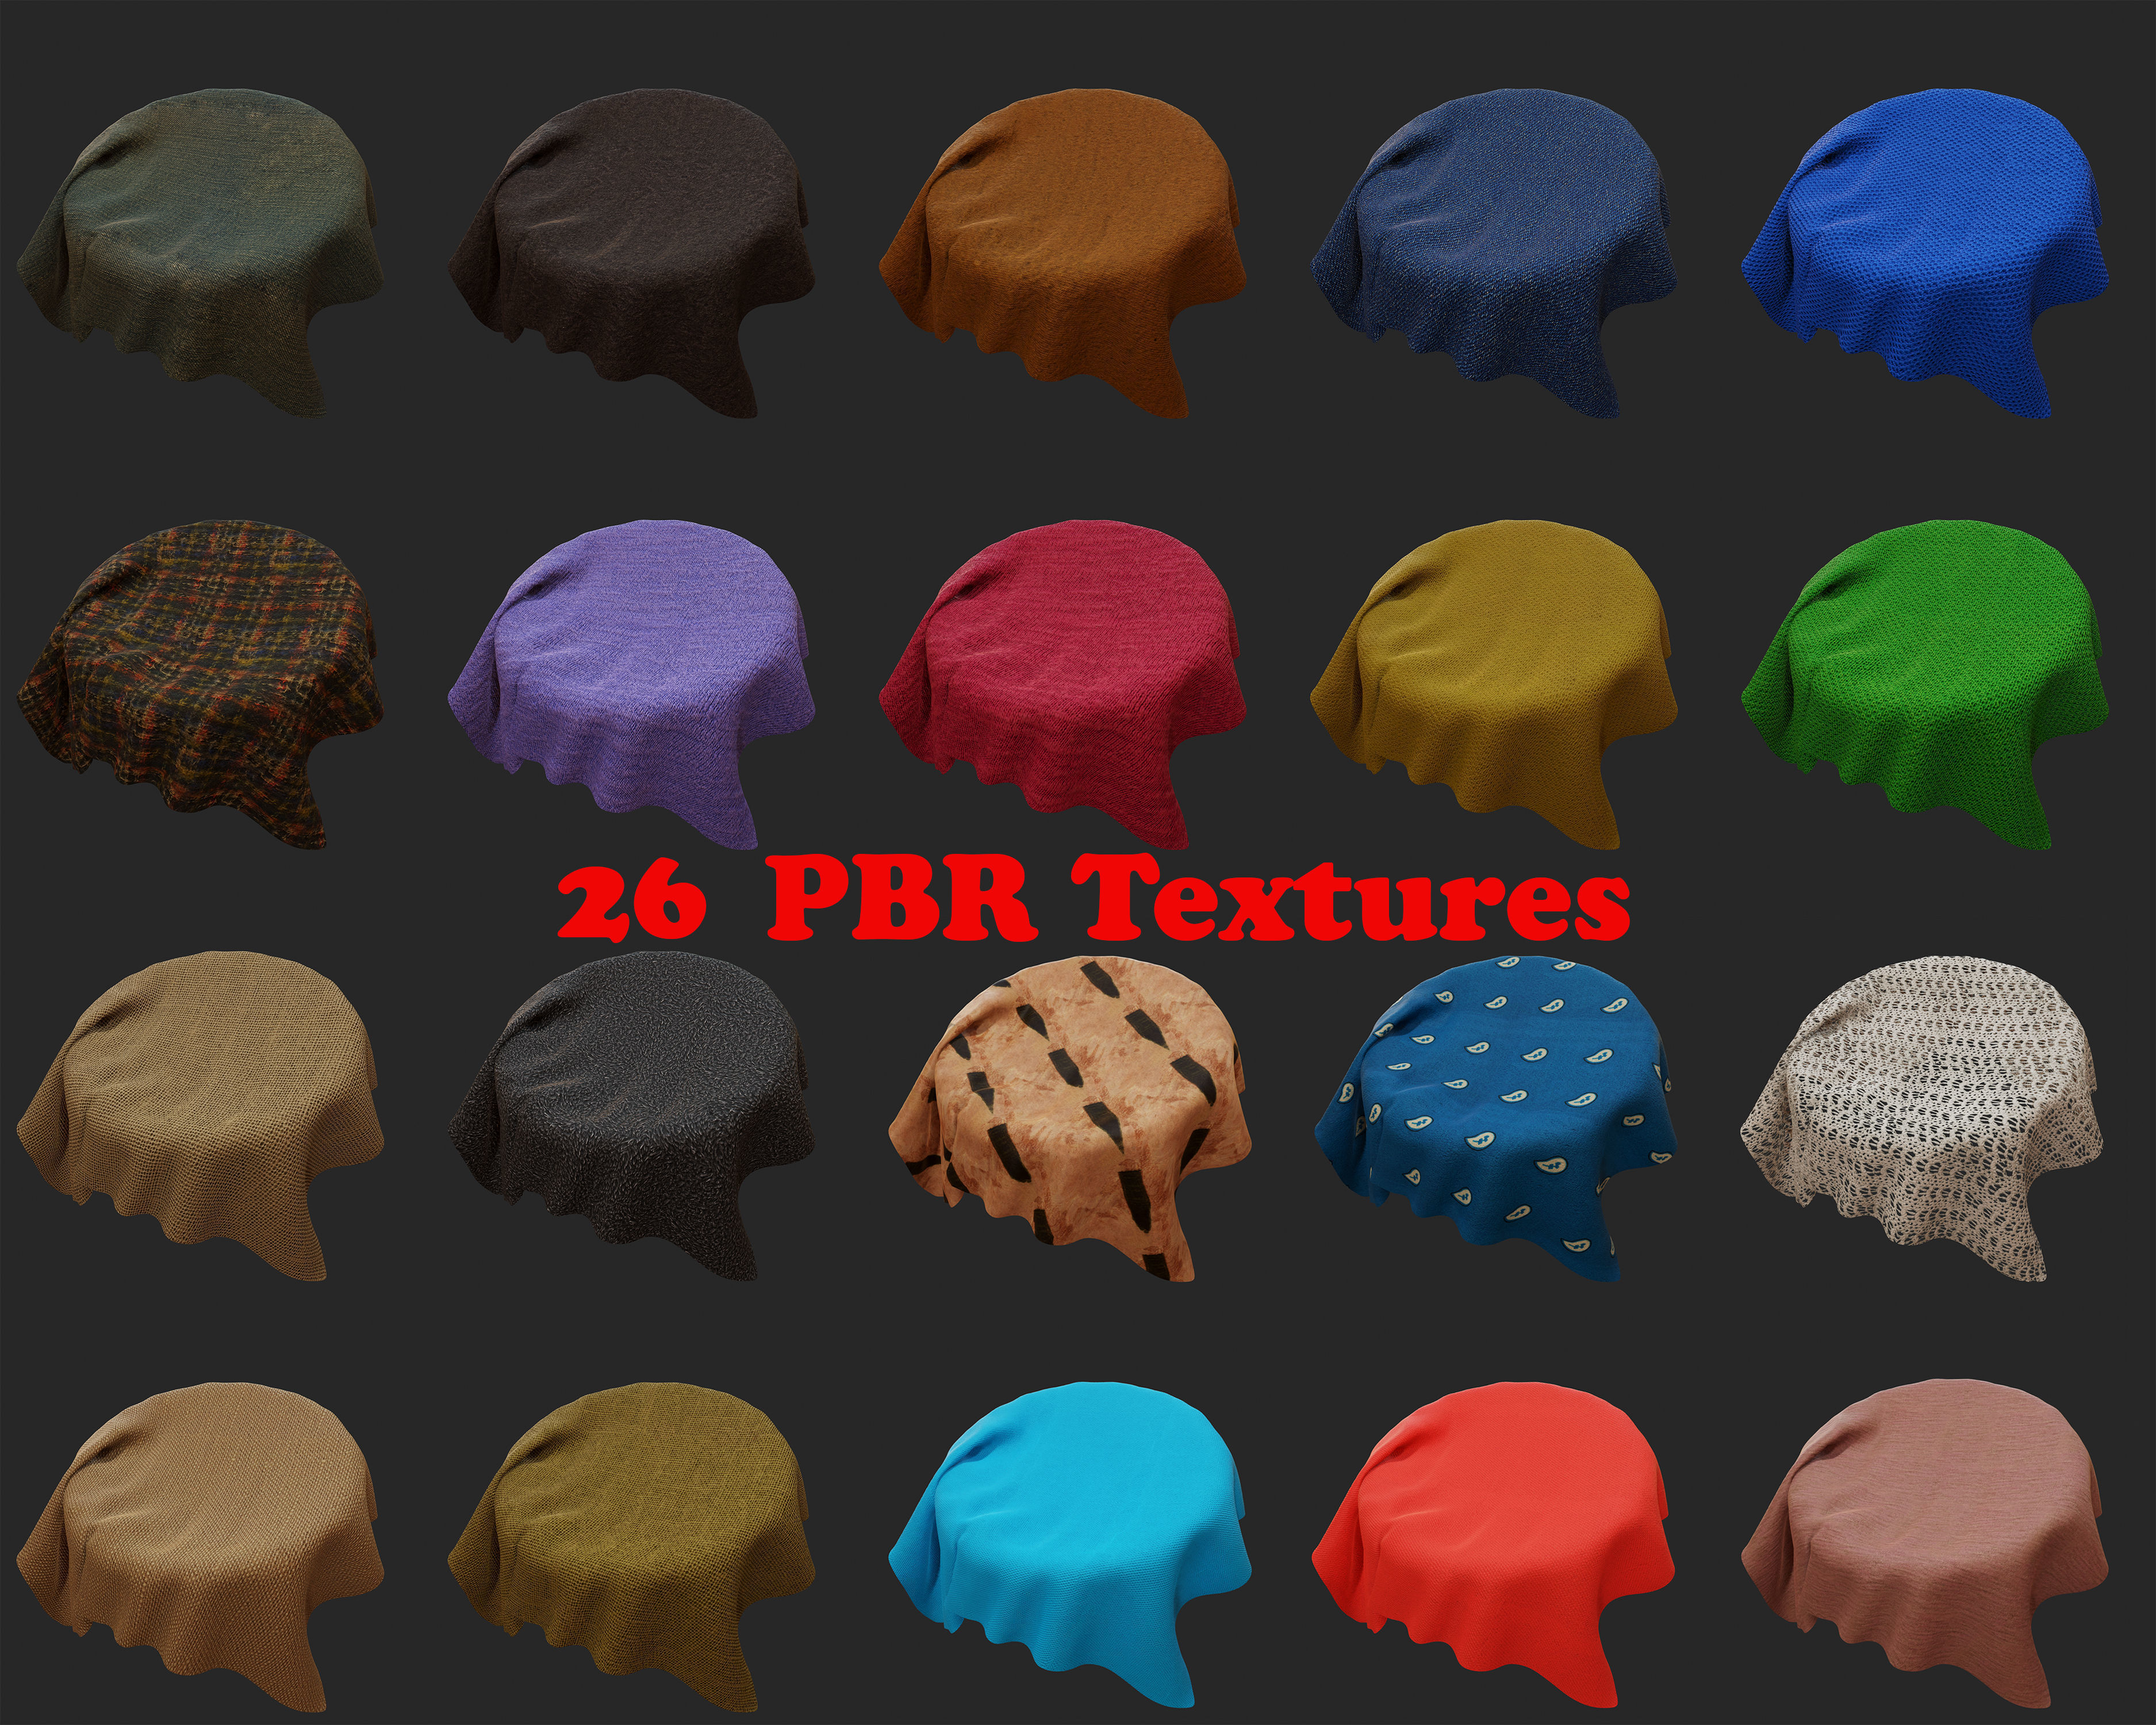 26 PBR Fabric textures